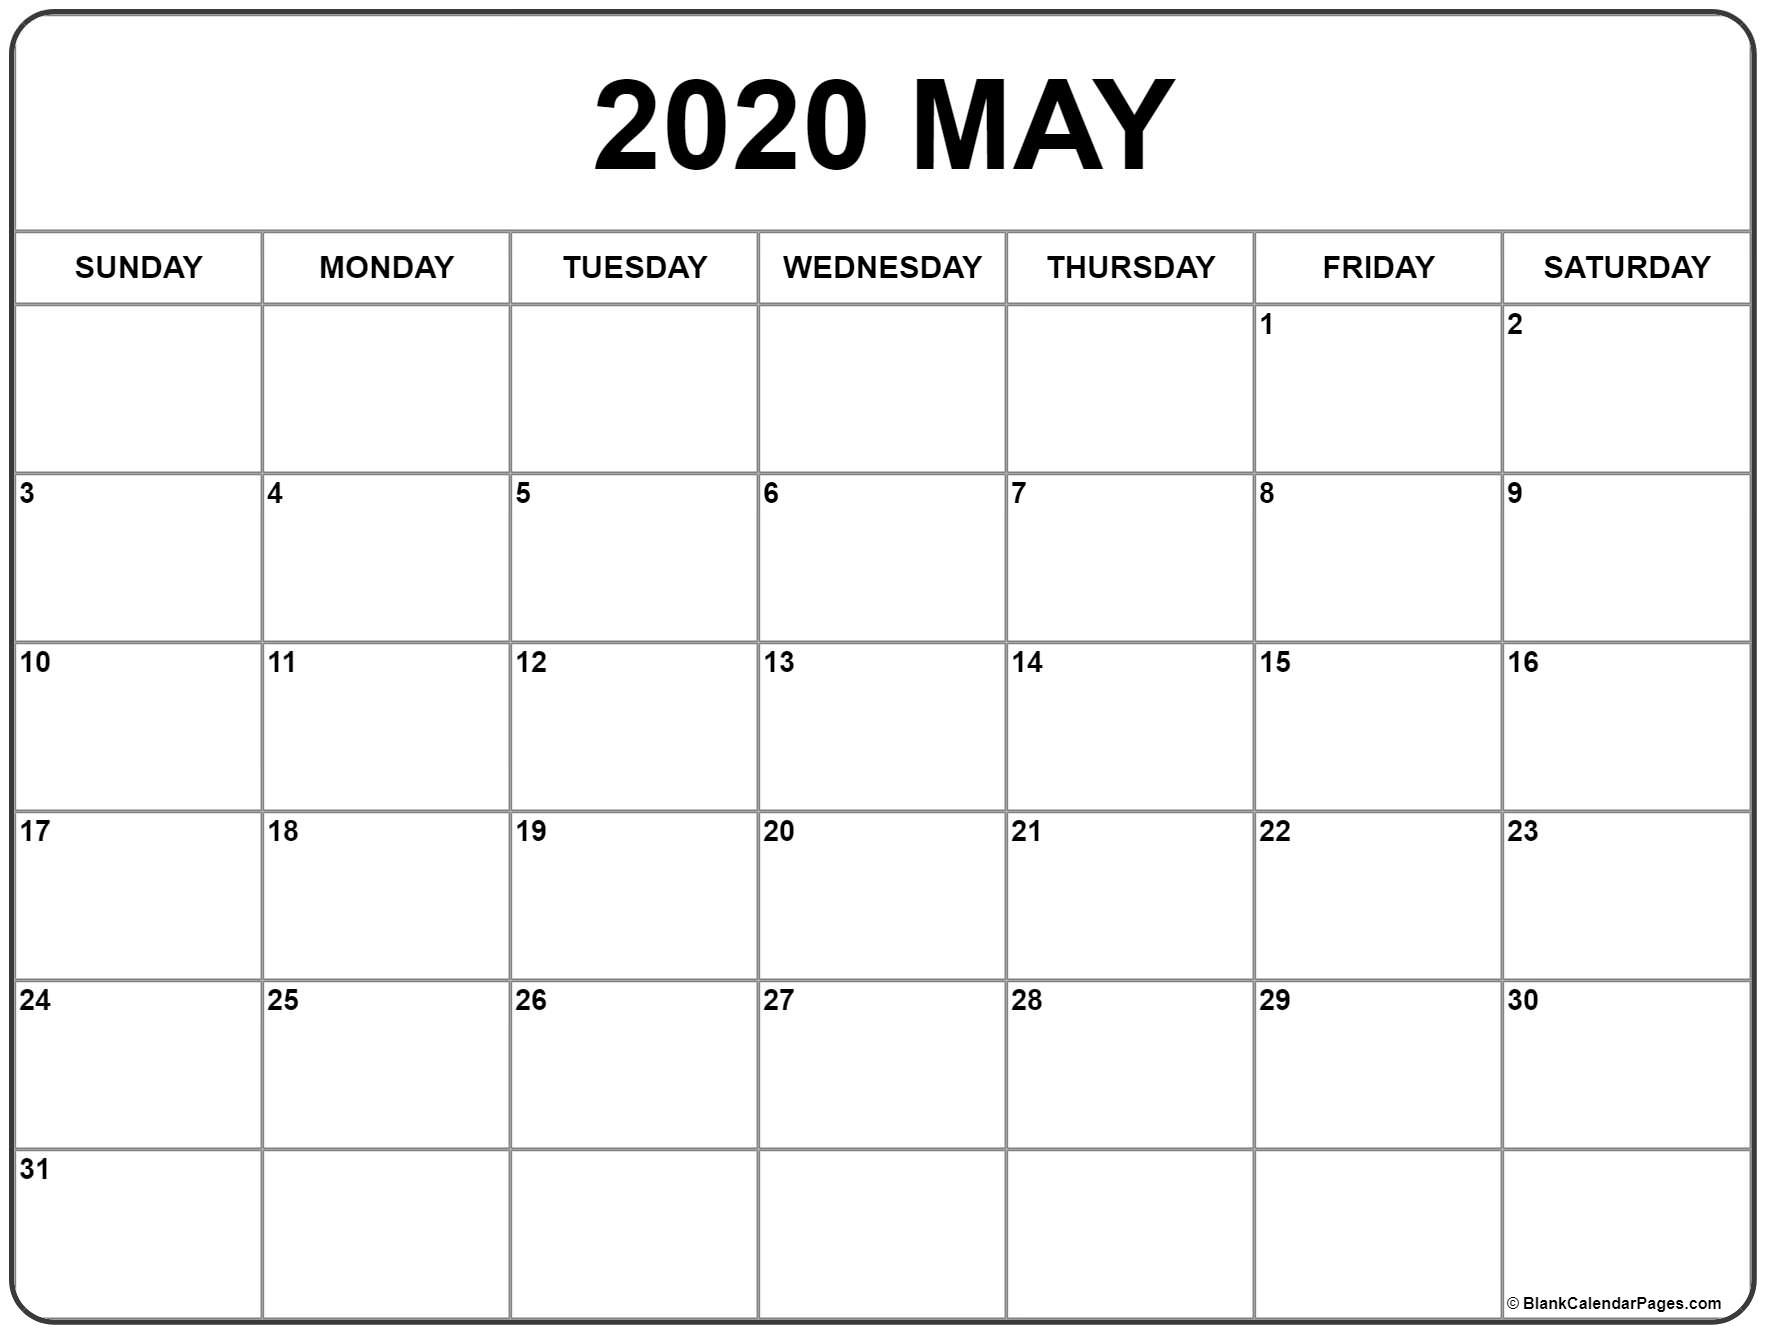 May 2020 Calendar | Free Printable Monthly Calendars-Printable Monthly Calendar Monday Start